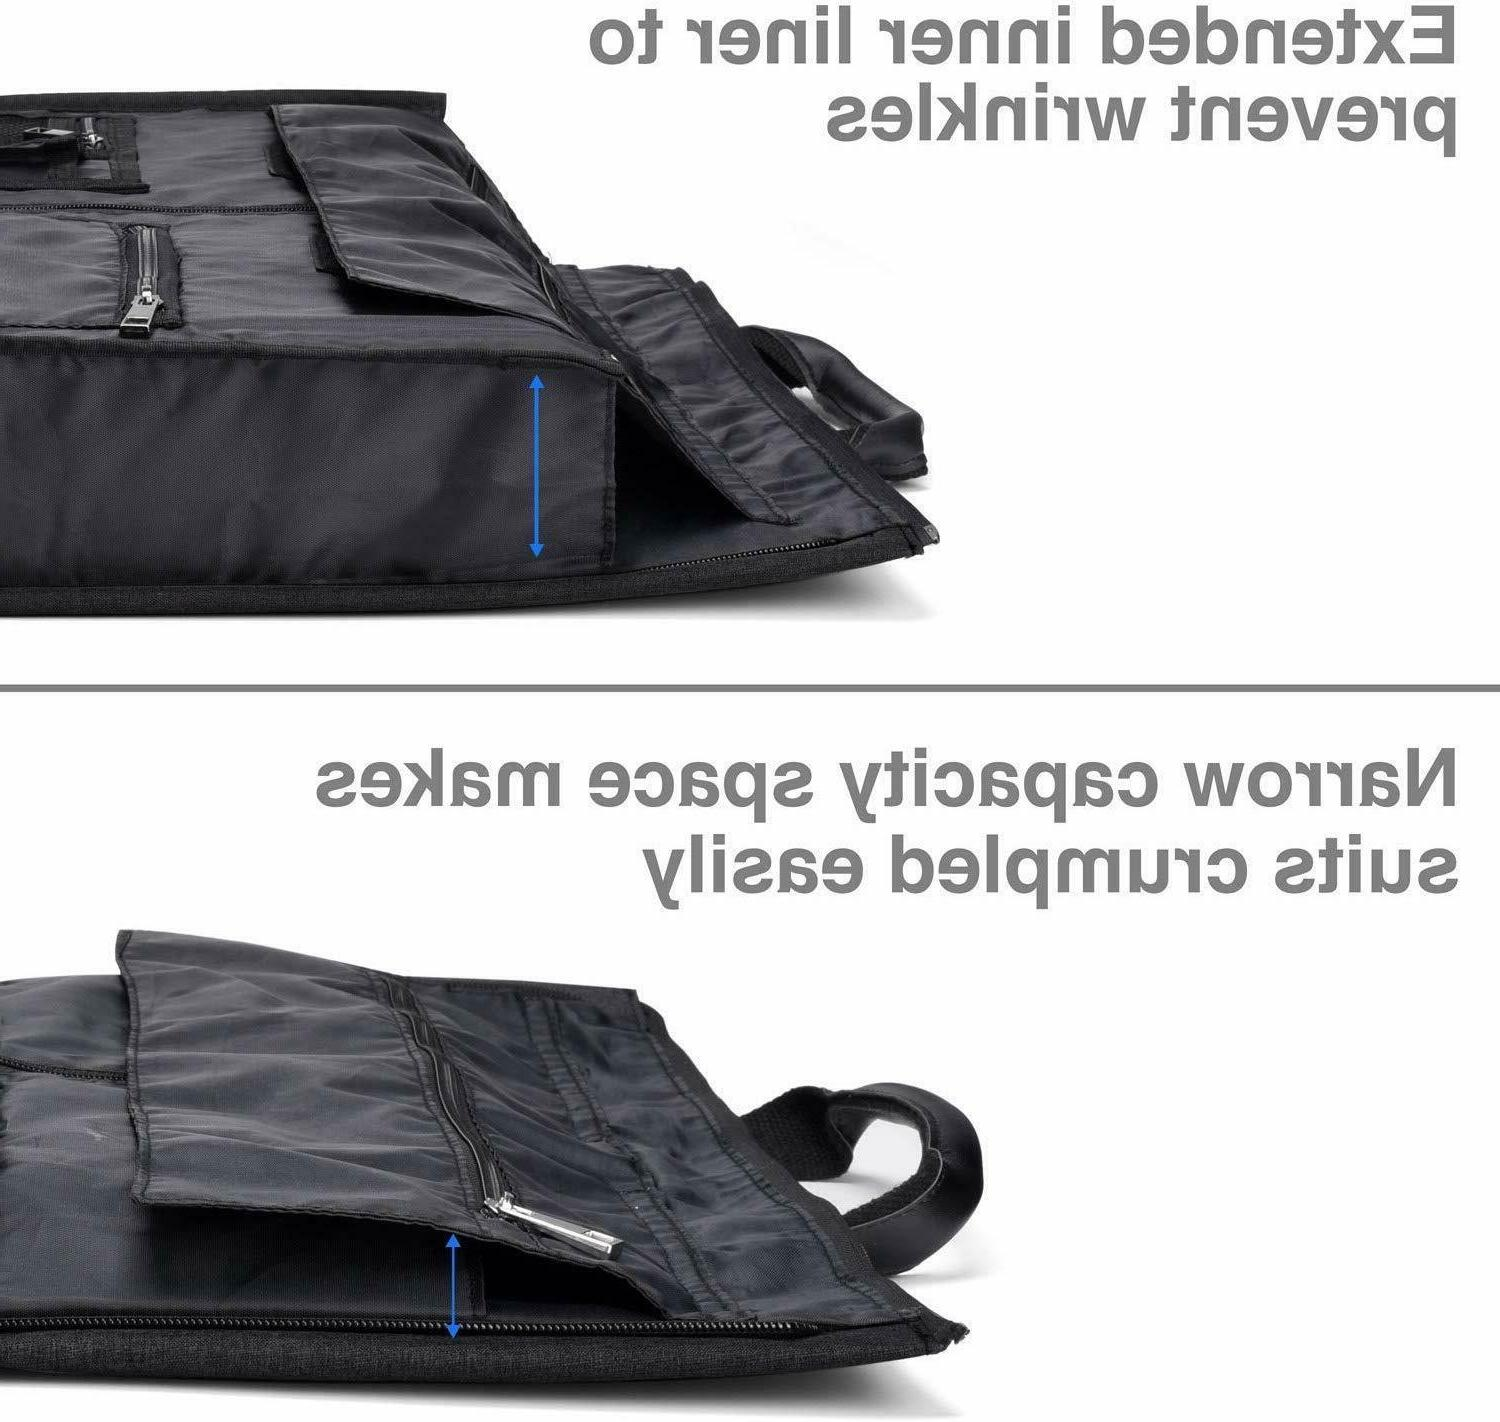 20 with Shoes Compartment - Black